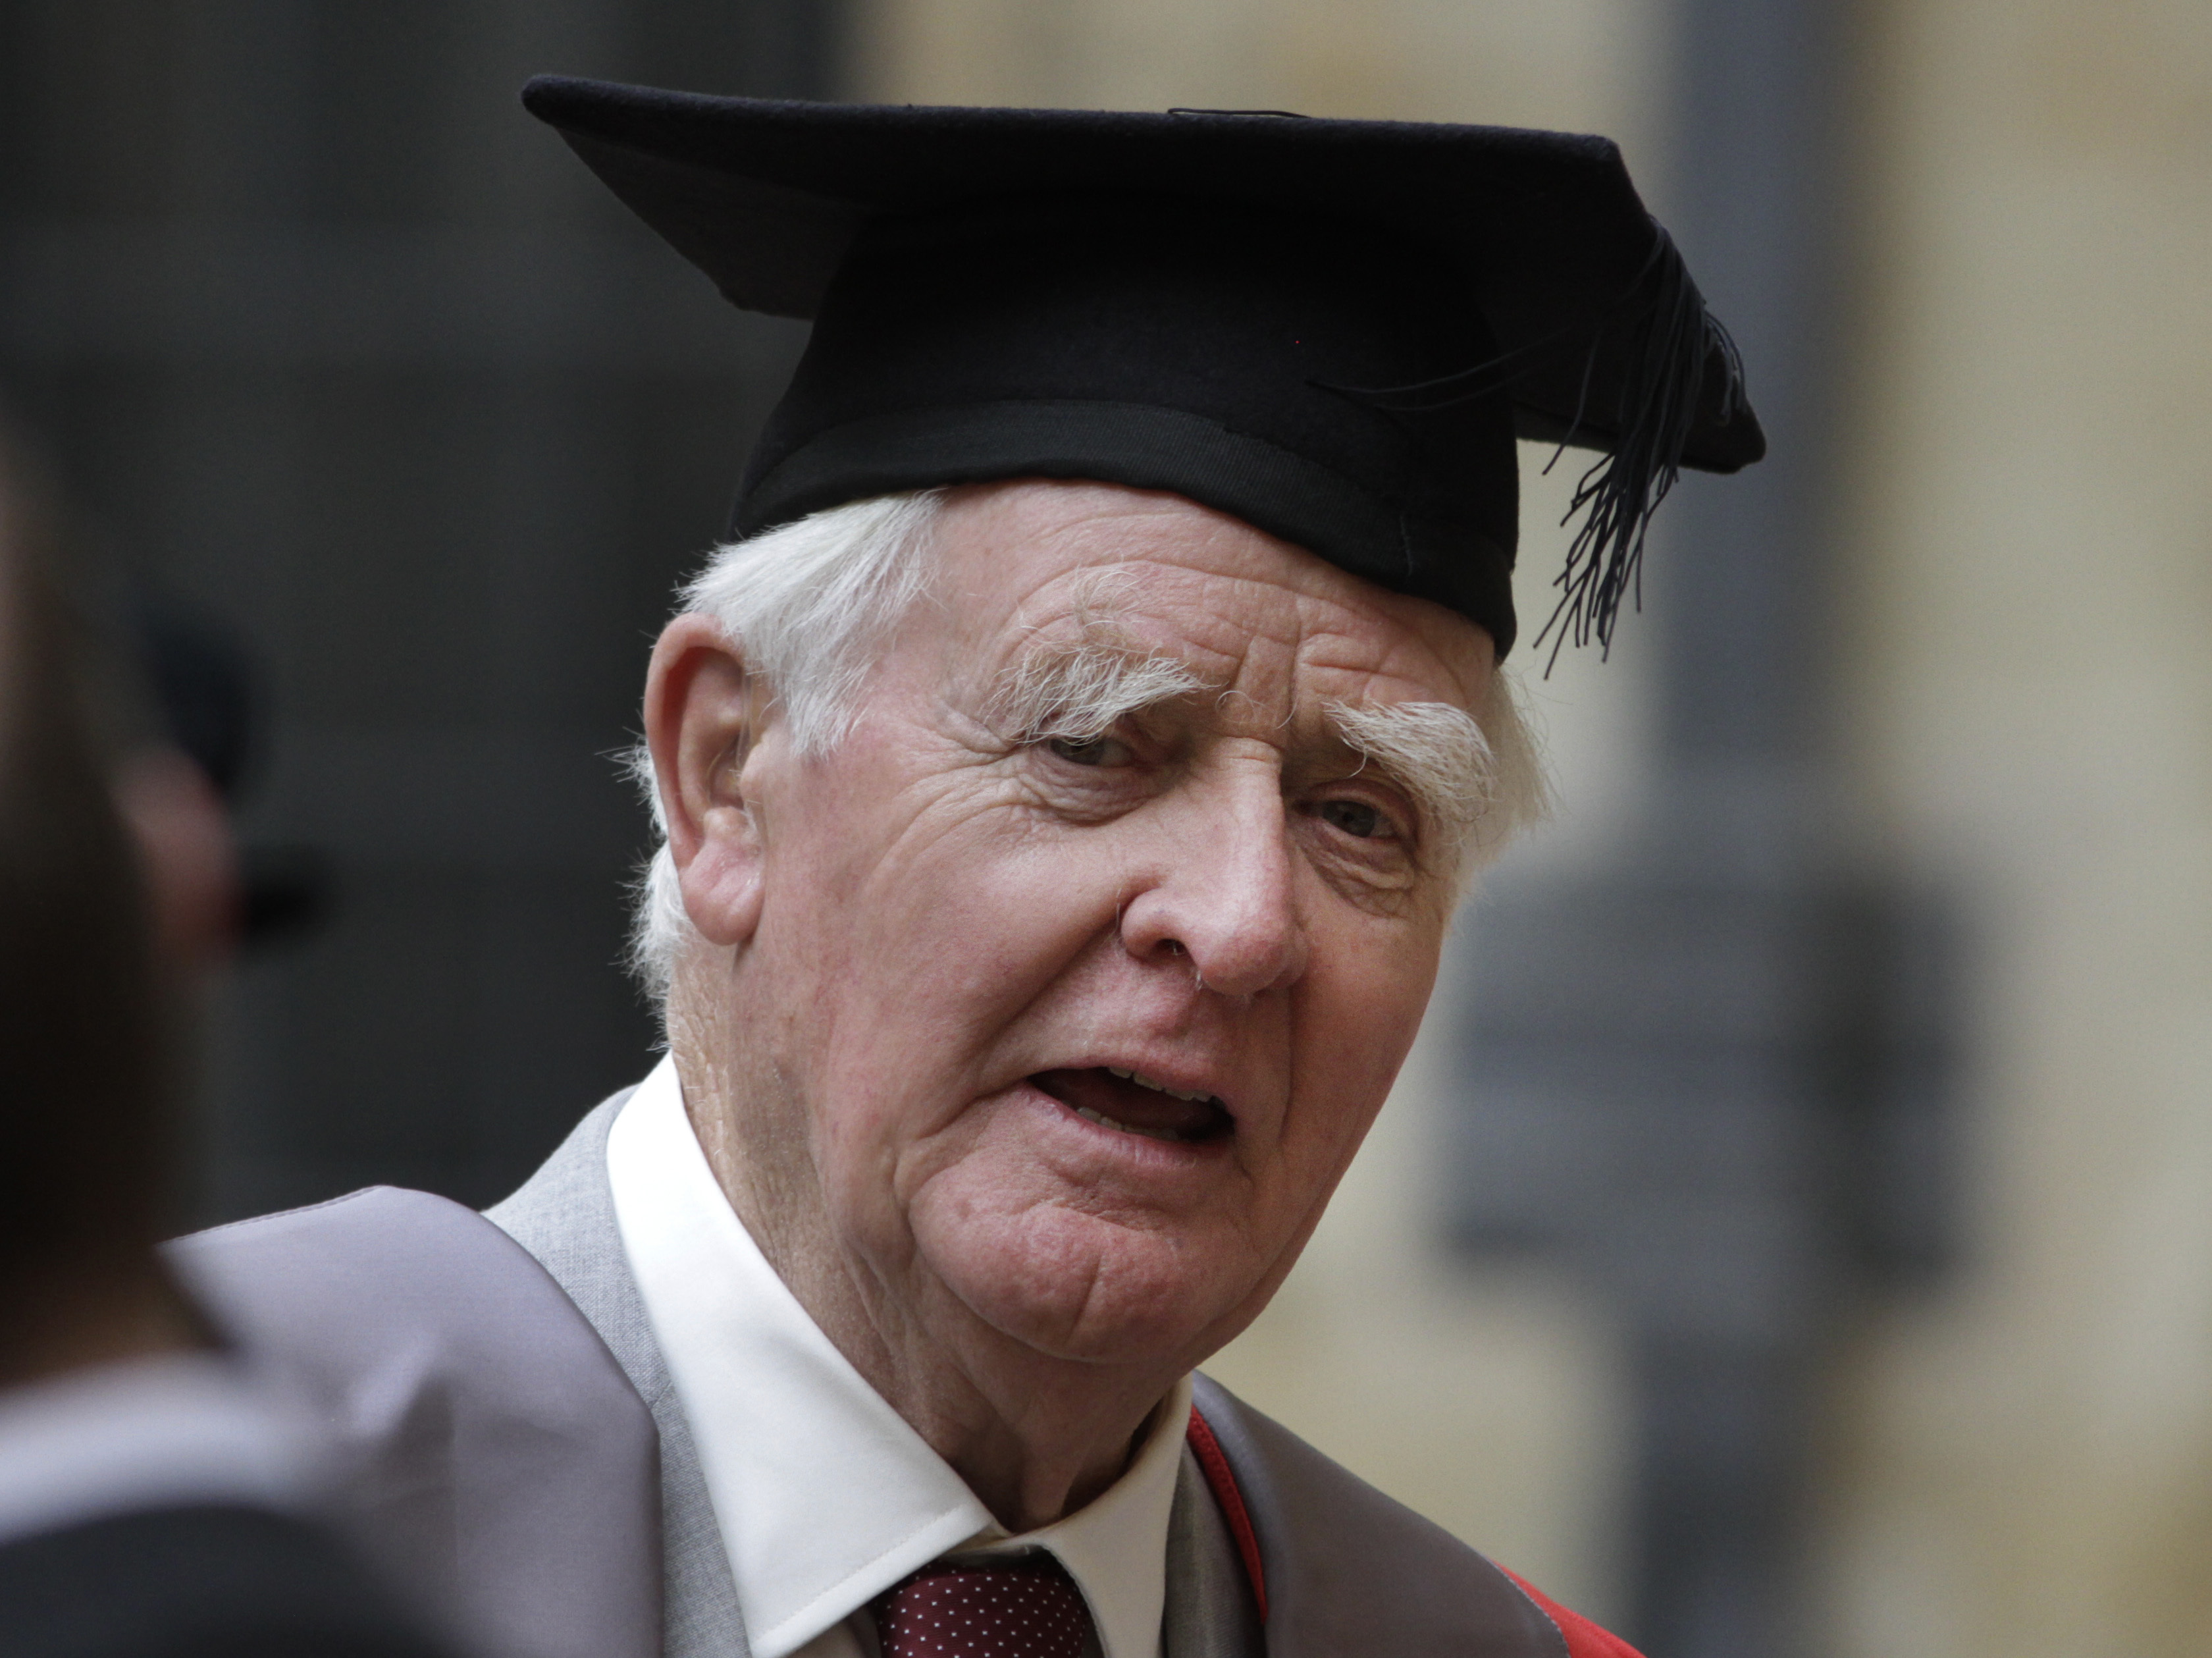 Author John le Carre poses for photographers following a ceremony at Oxford University on June 20.